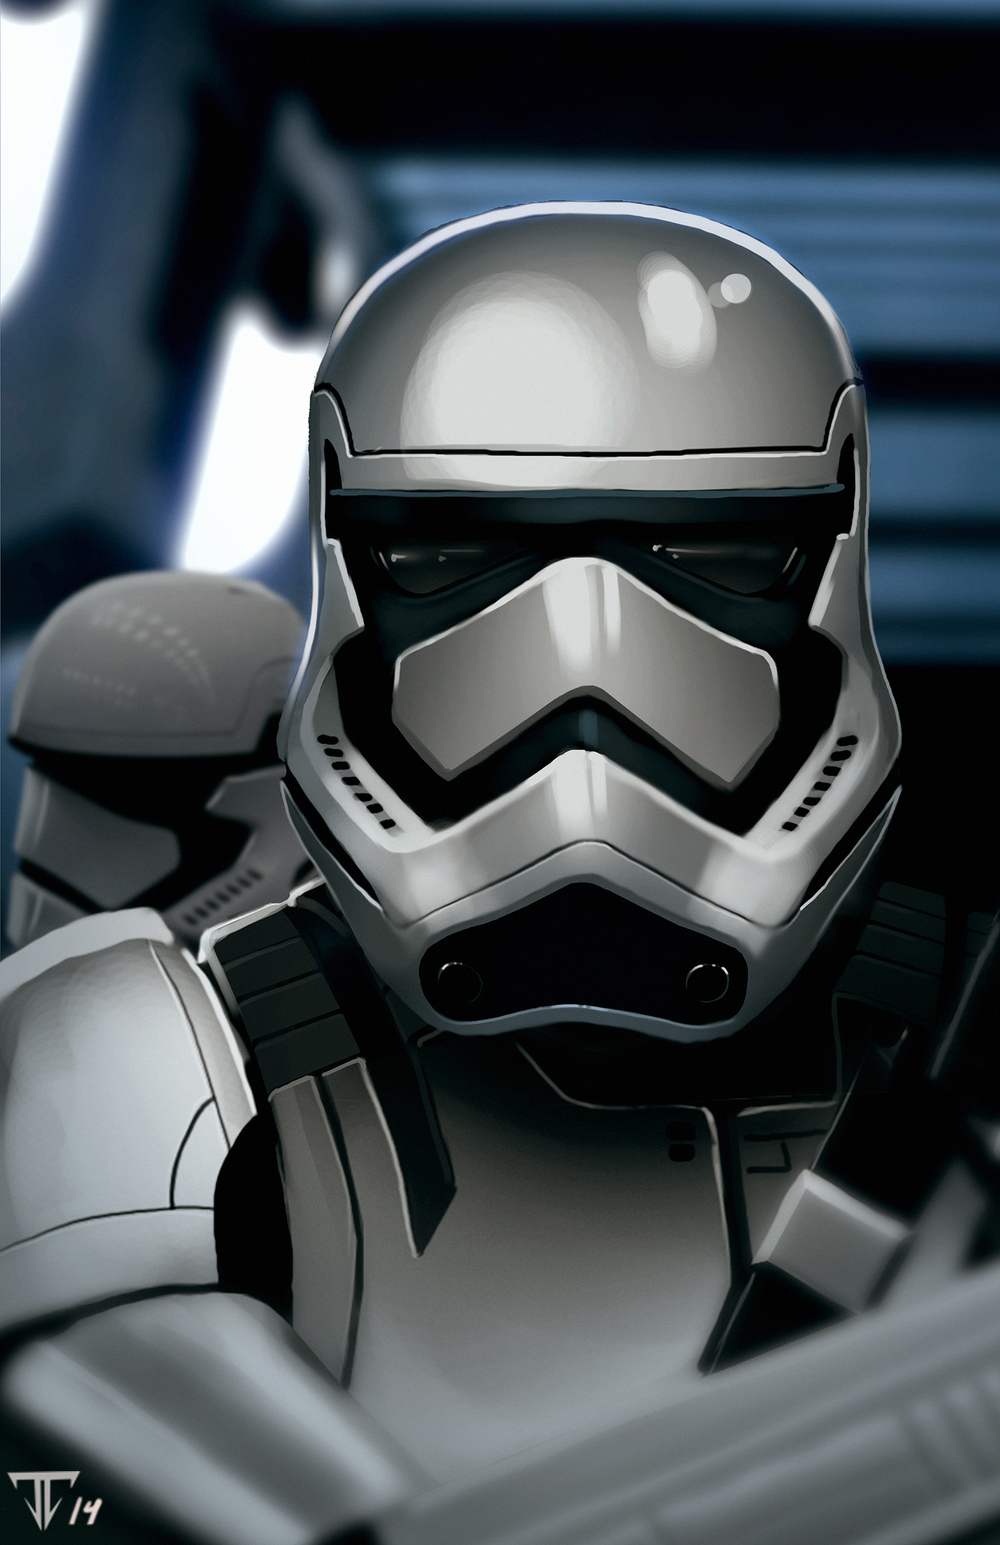 Star Wars 7 Stormtrooper Wallpaper Wallpapersafari